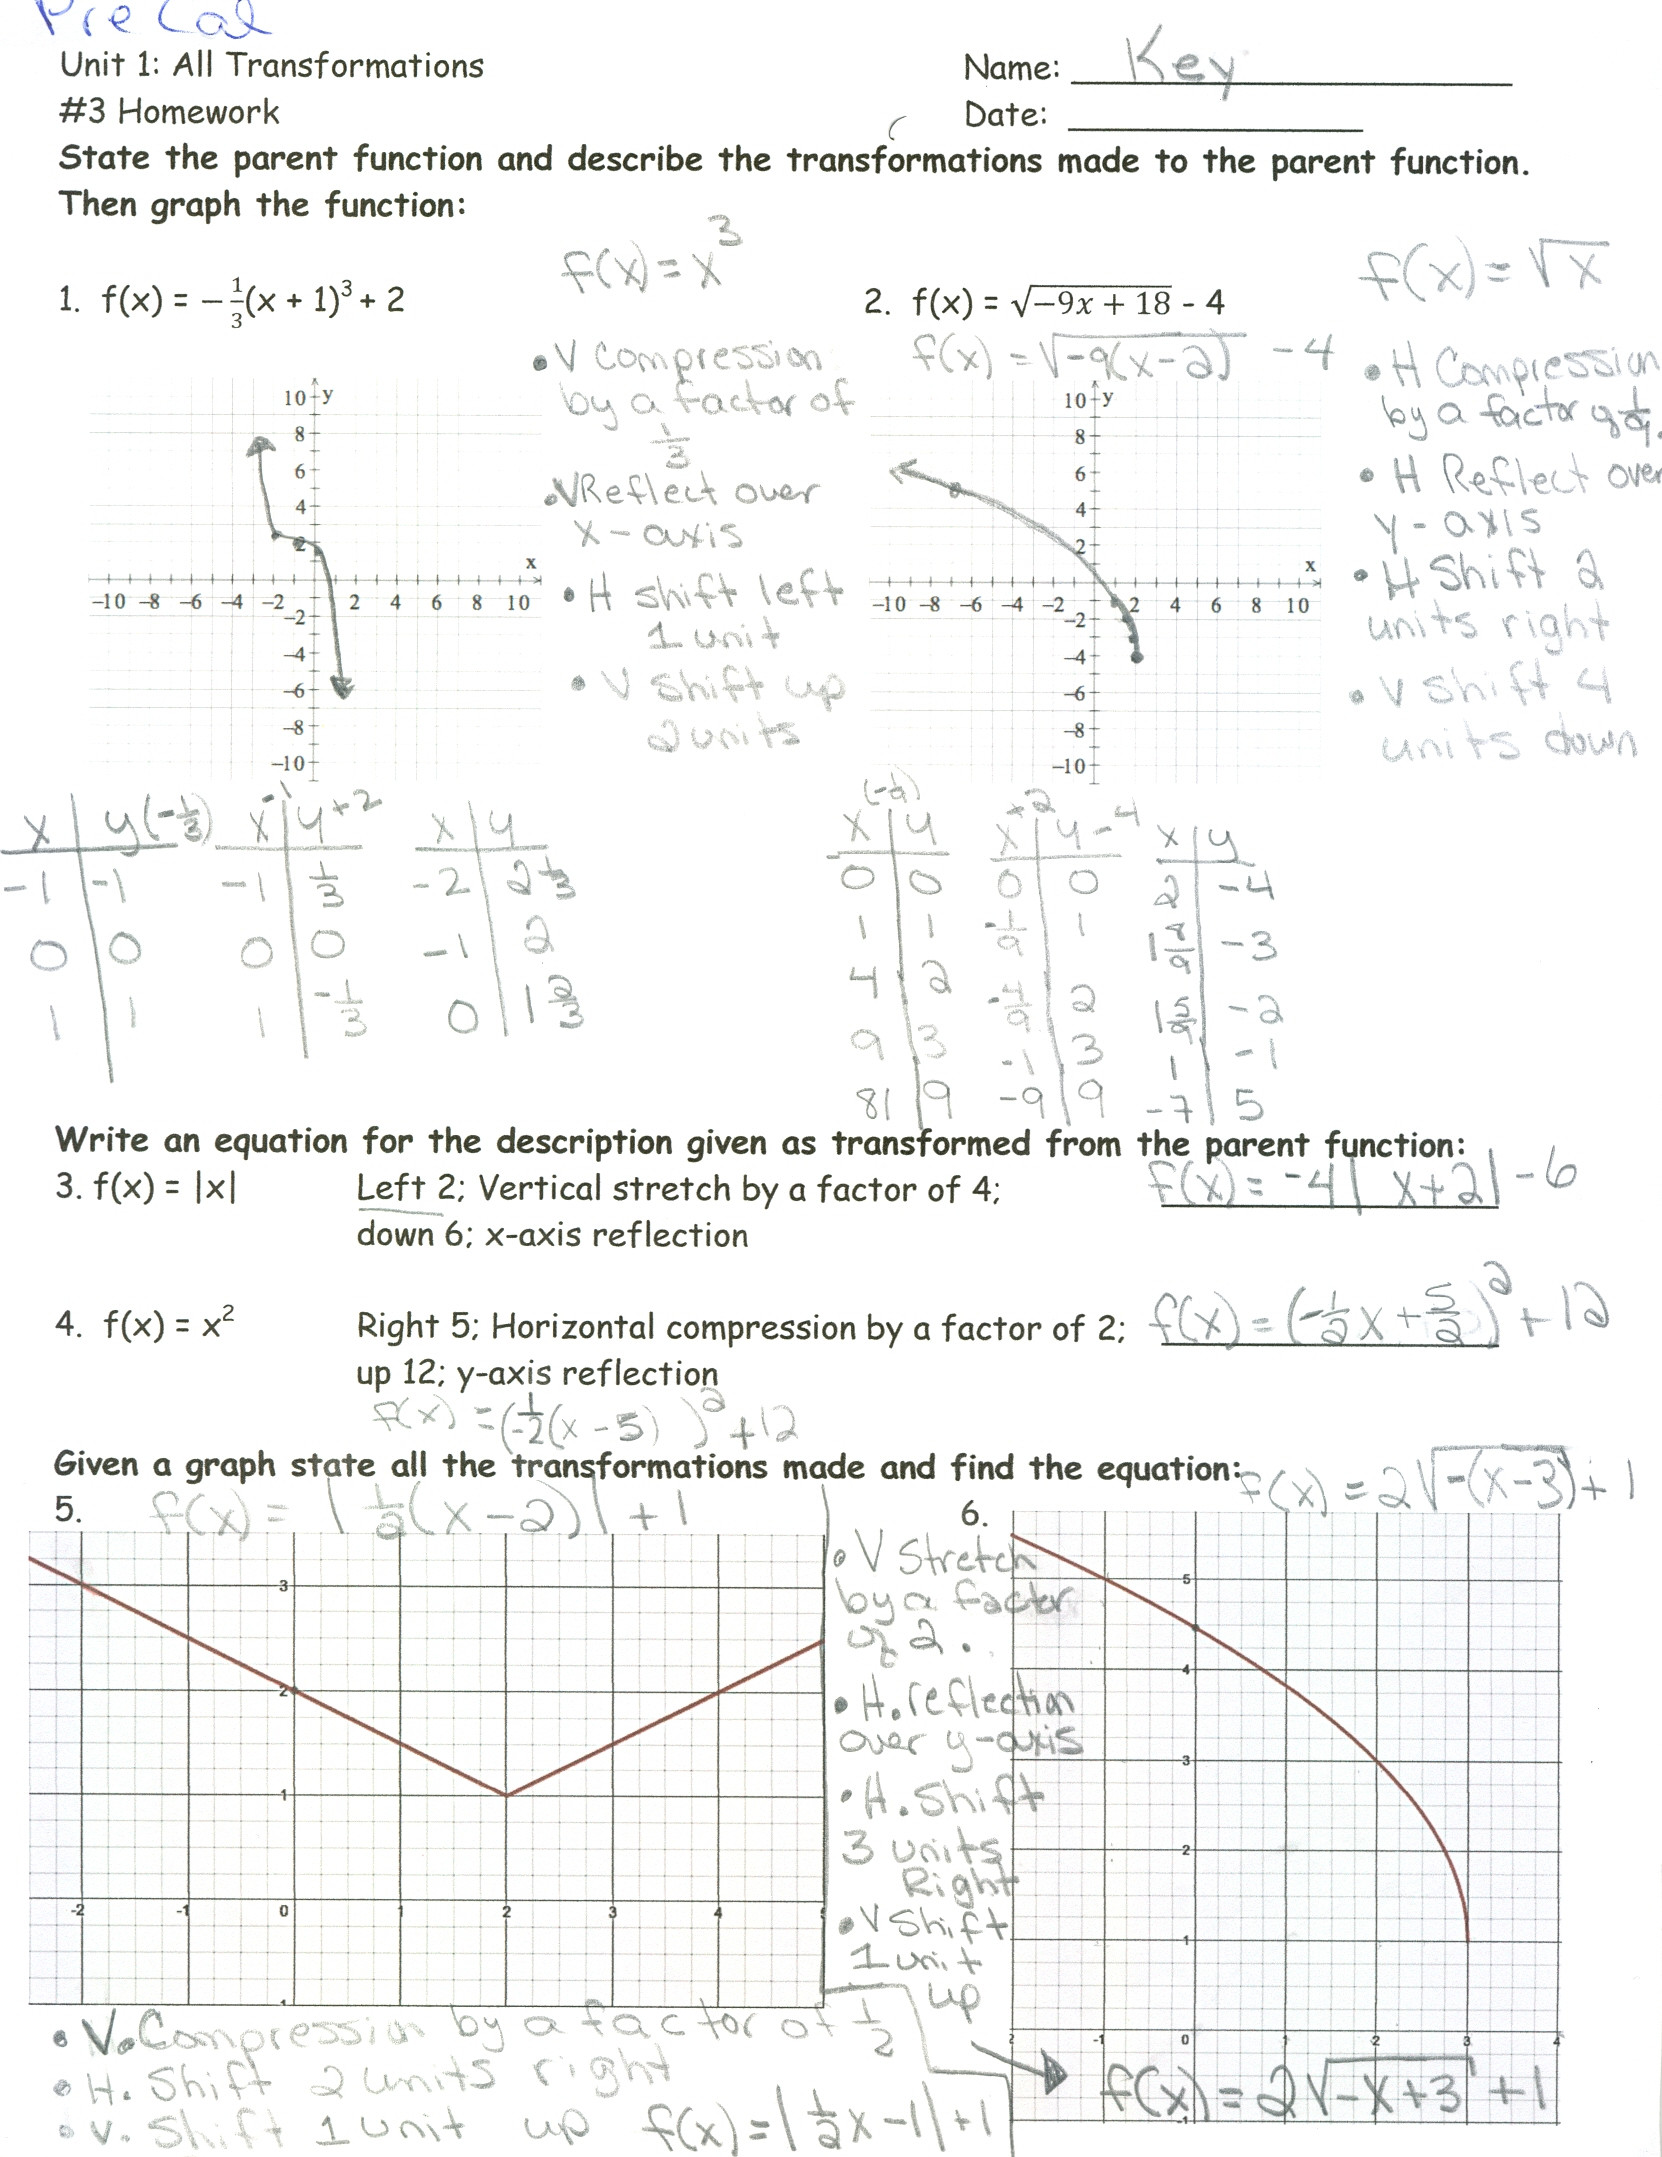 Parent Function Worksheet Answers Transformations Functions Worksheet Answers Nidecmege